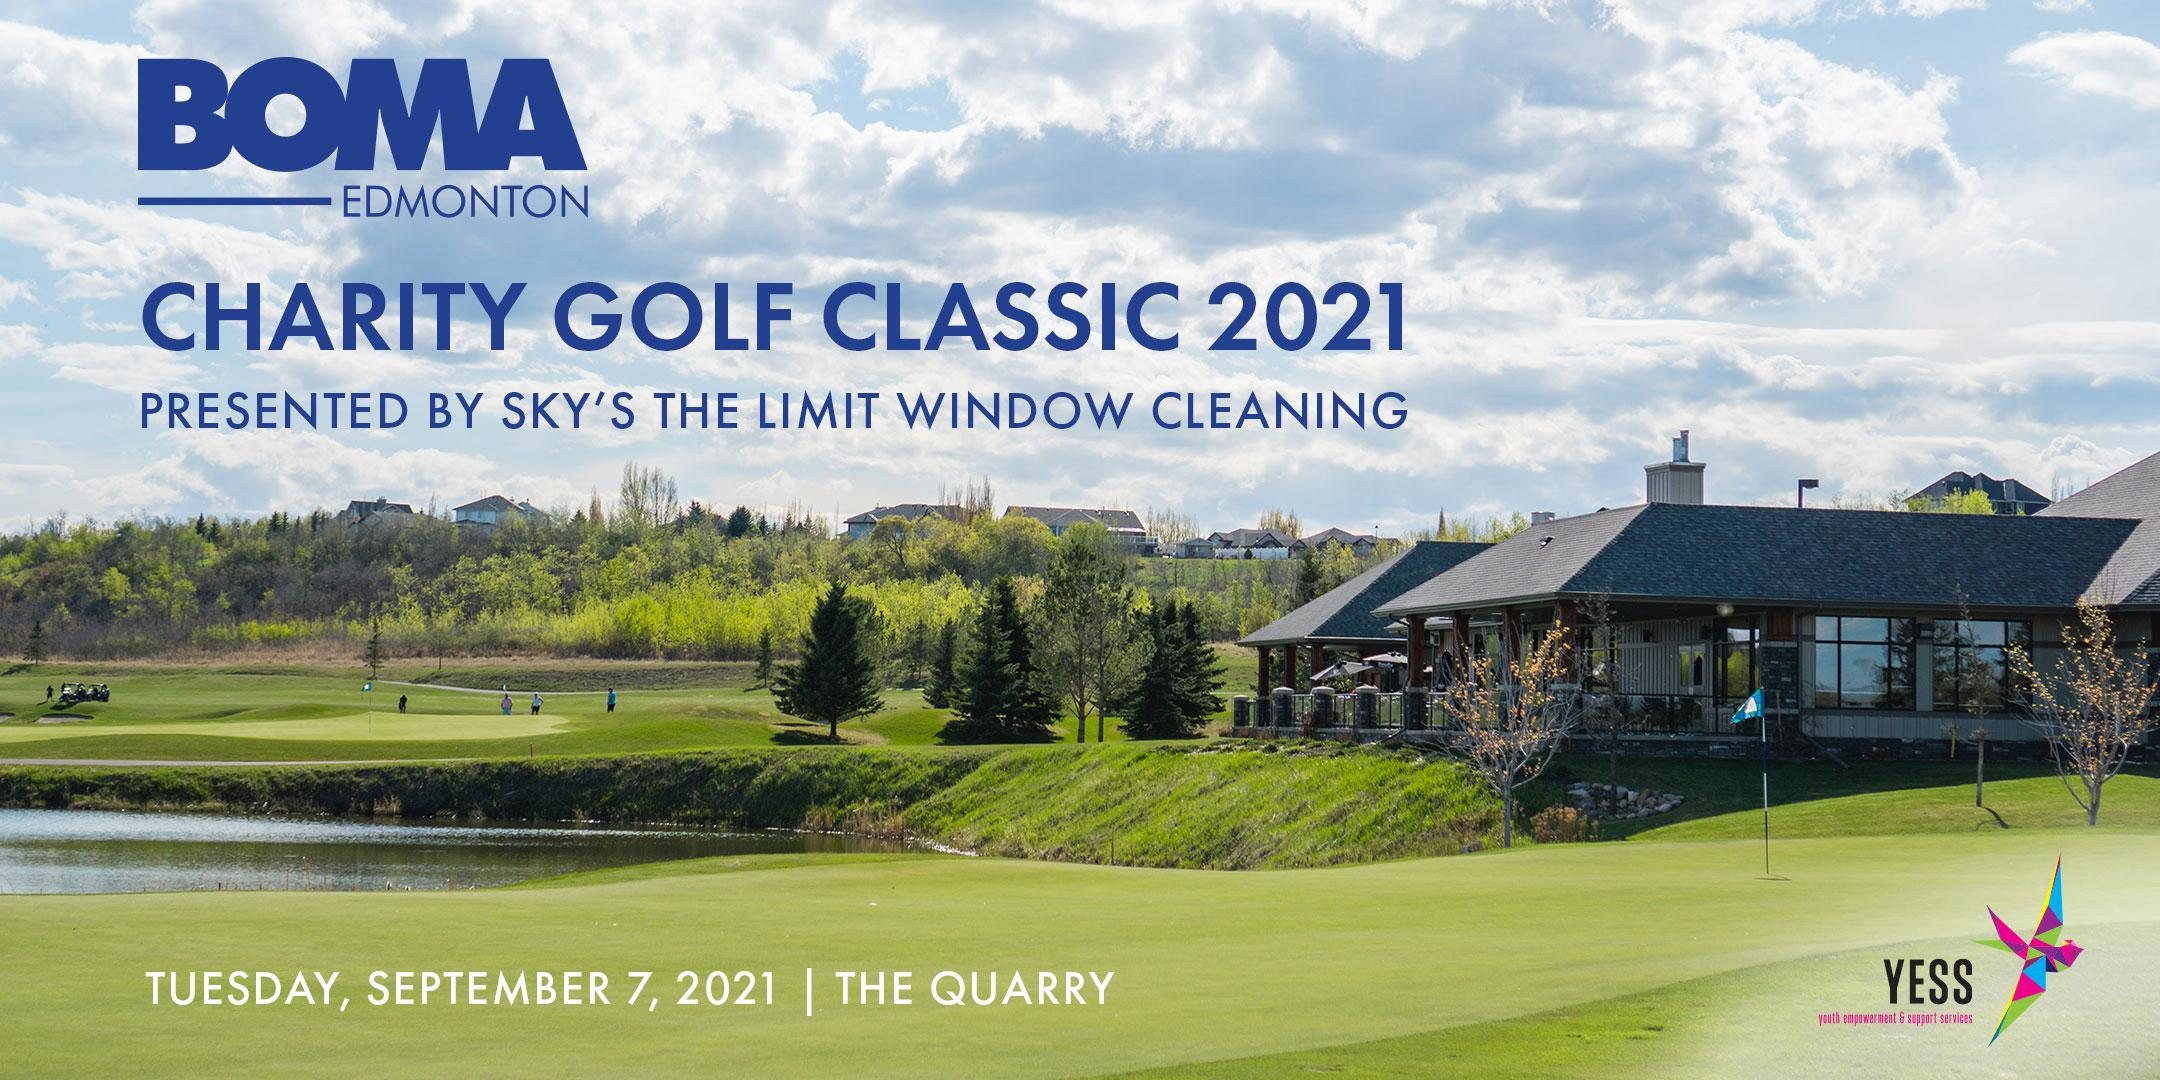 BOMA Edm Charity Golf Classic—Presented By Sky's The Limit Window Cleaning